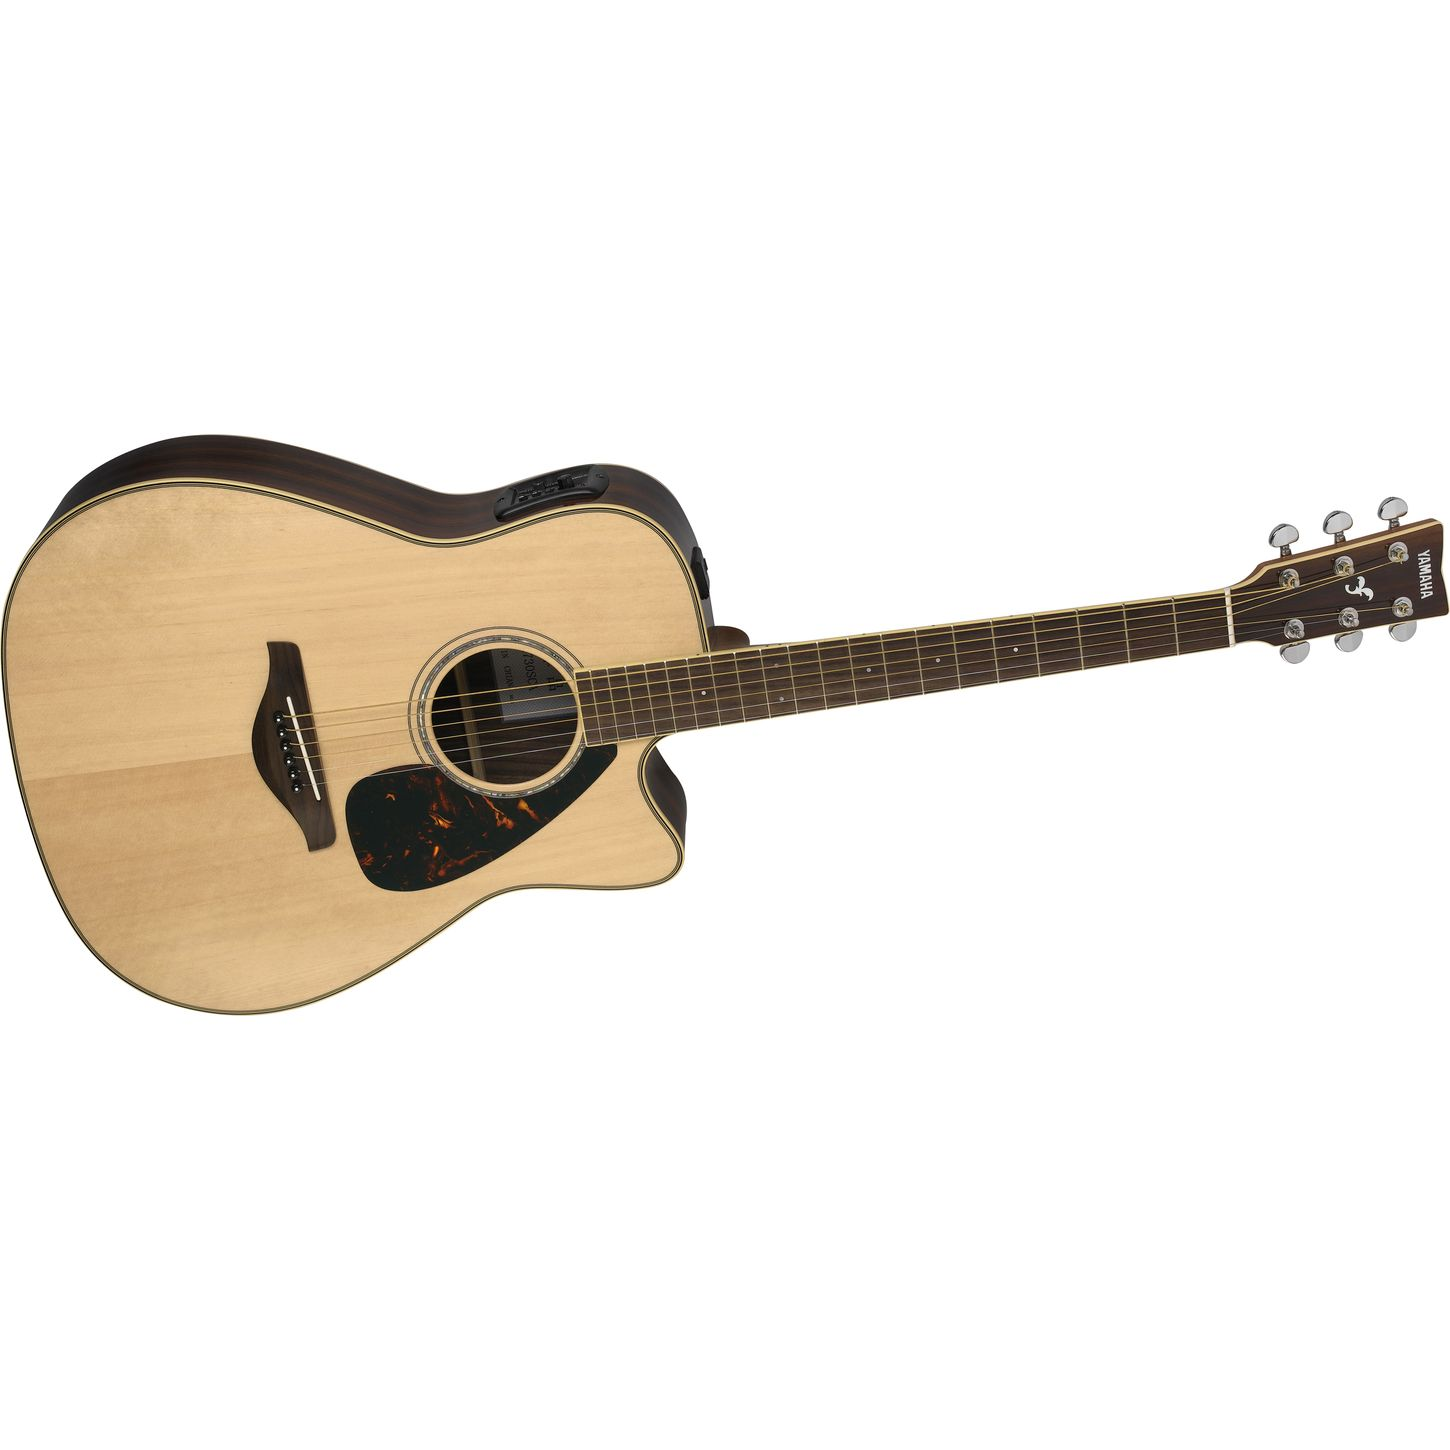 yamaha fgx730sc solid top acoustic electric guitar musician 39 s friend. Black Bedroom Furniture Sets. Home Design Ideas